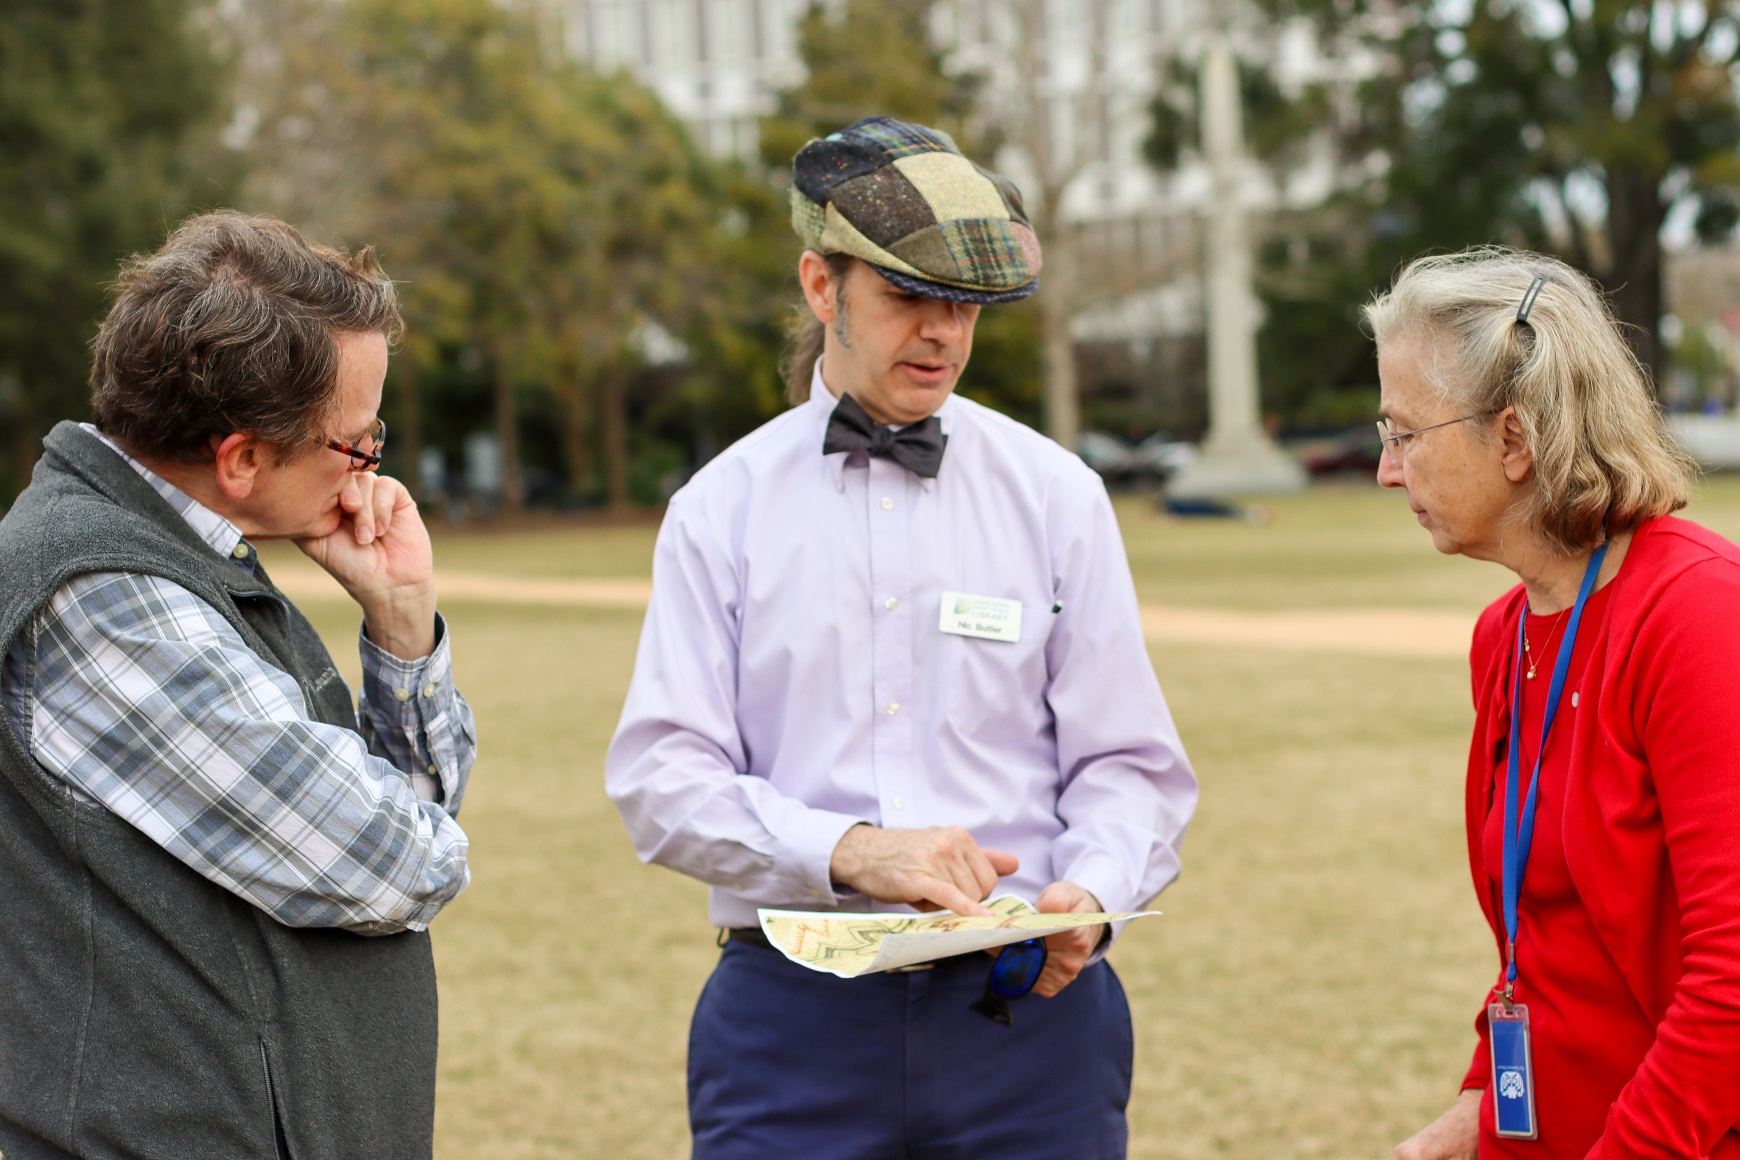 Uncovering History: Locating the Horn Work under Marion Square